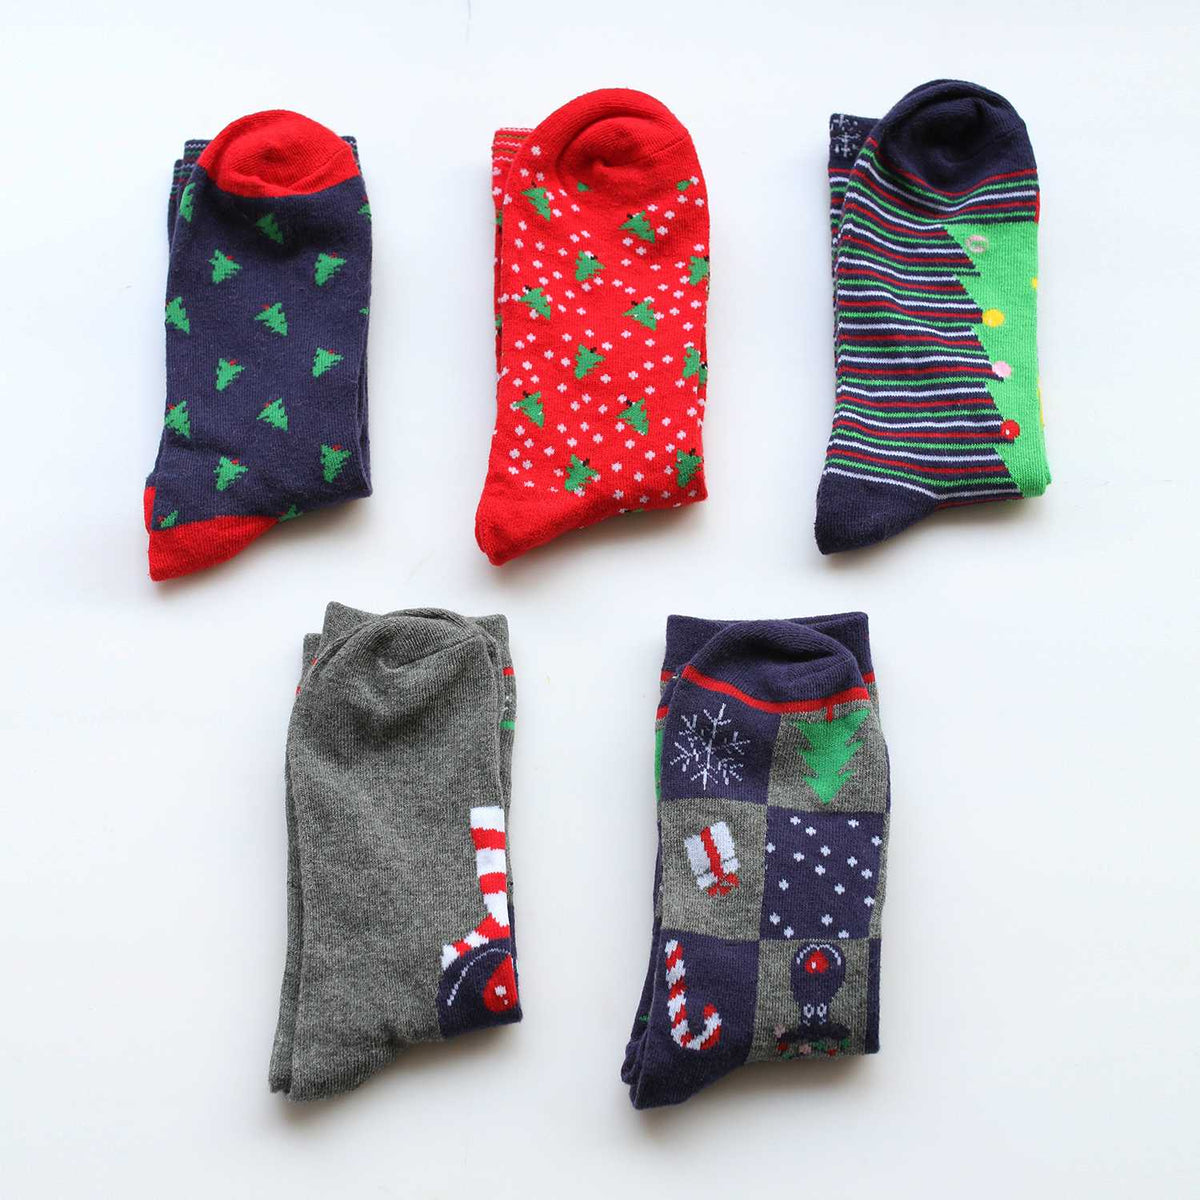 Long Cotton Socks 5 Pairs Set - Christmas - worthtryit.com